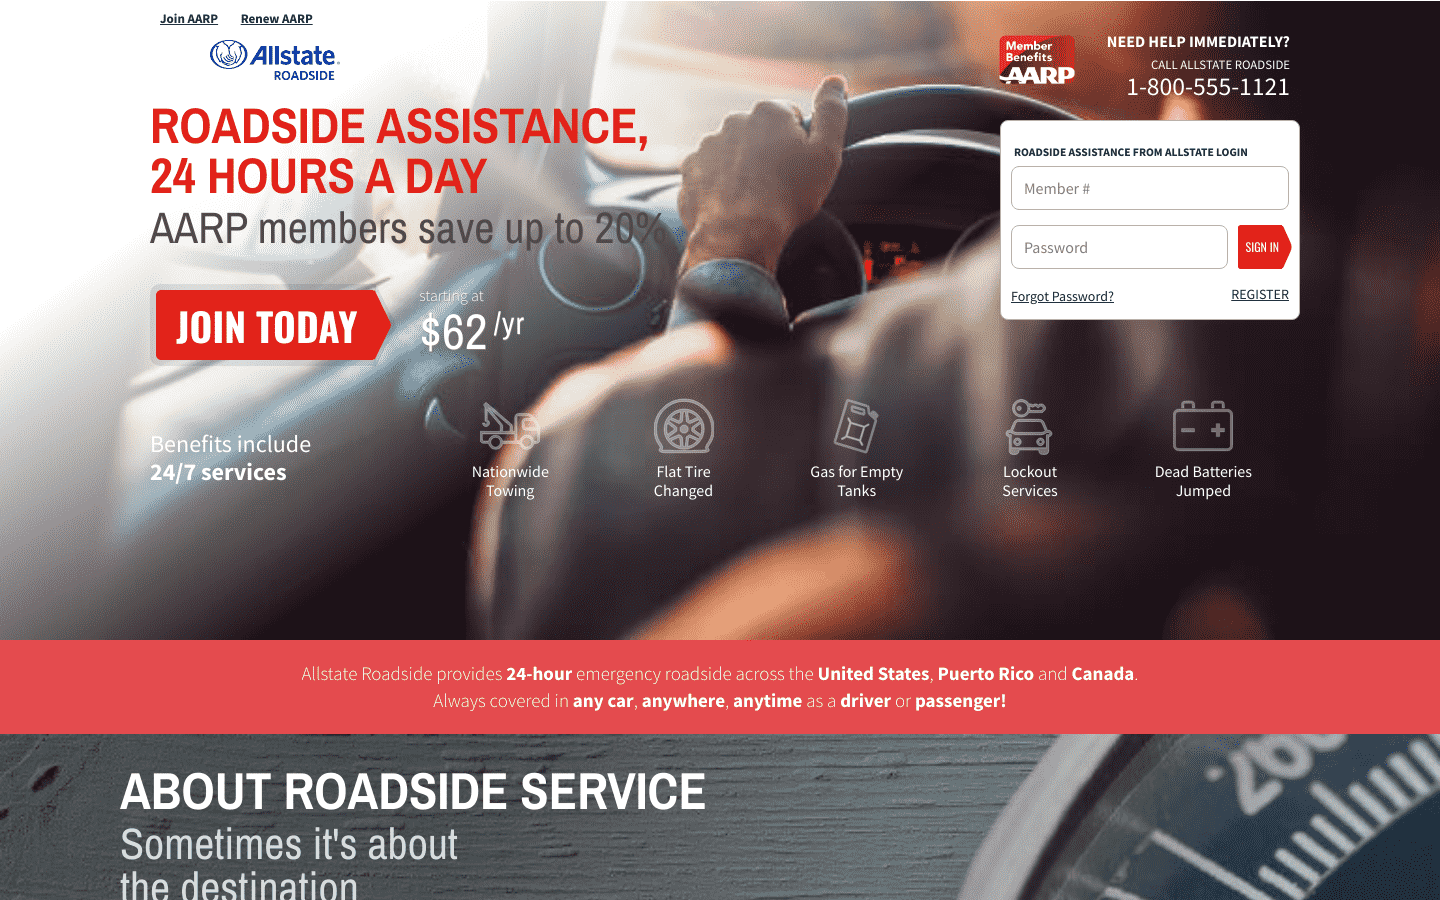 AARP Roadside Assistance from Allstate reviews and complaints